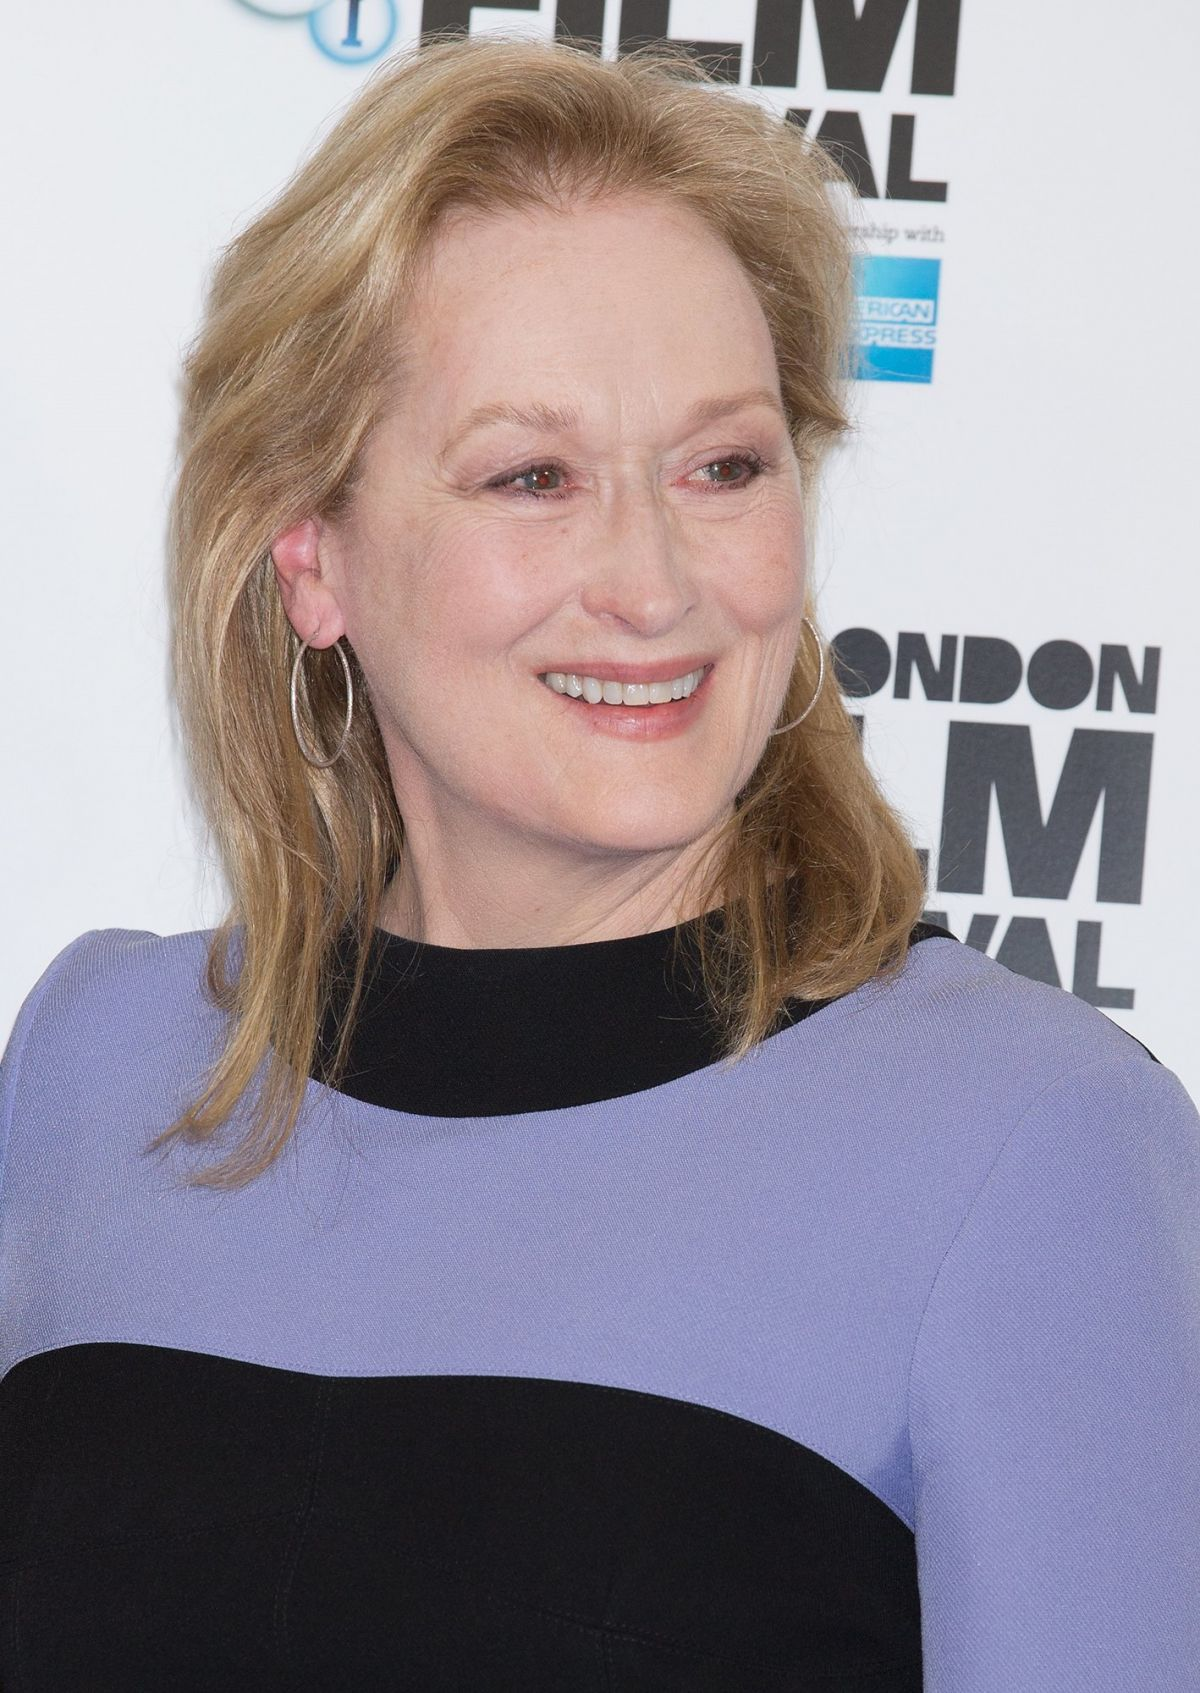 MERYL STREEP at Suffragette Photocall at BFI London Film Festival 10/07/2015